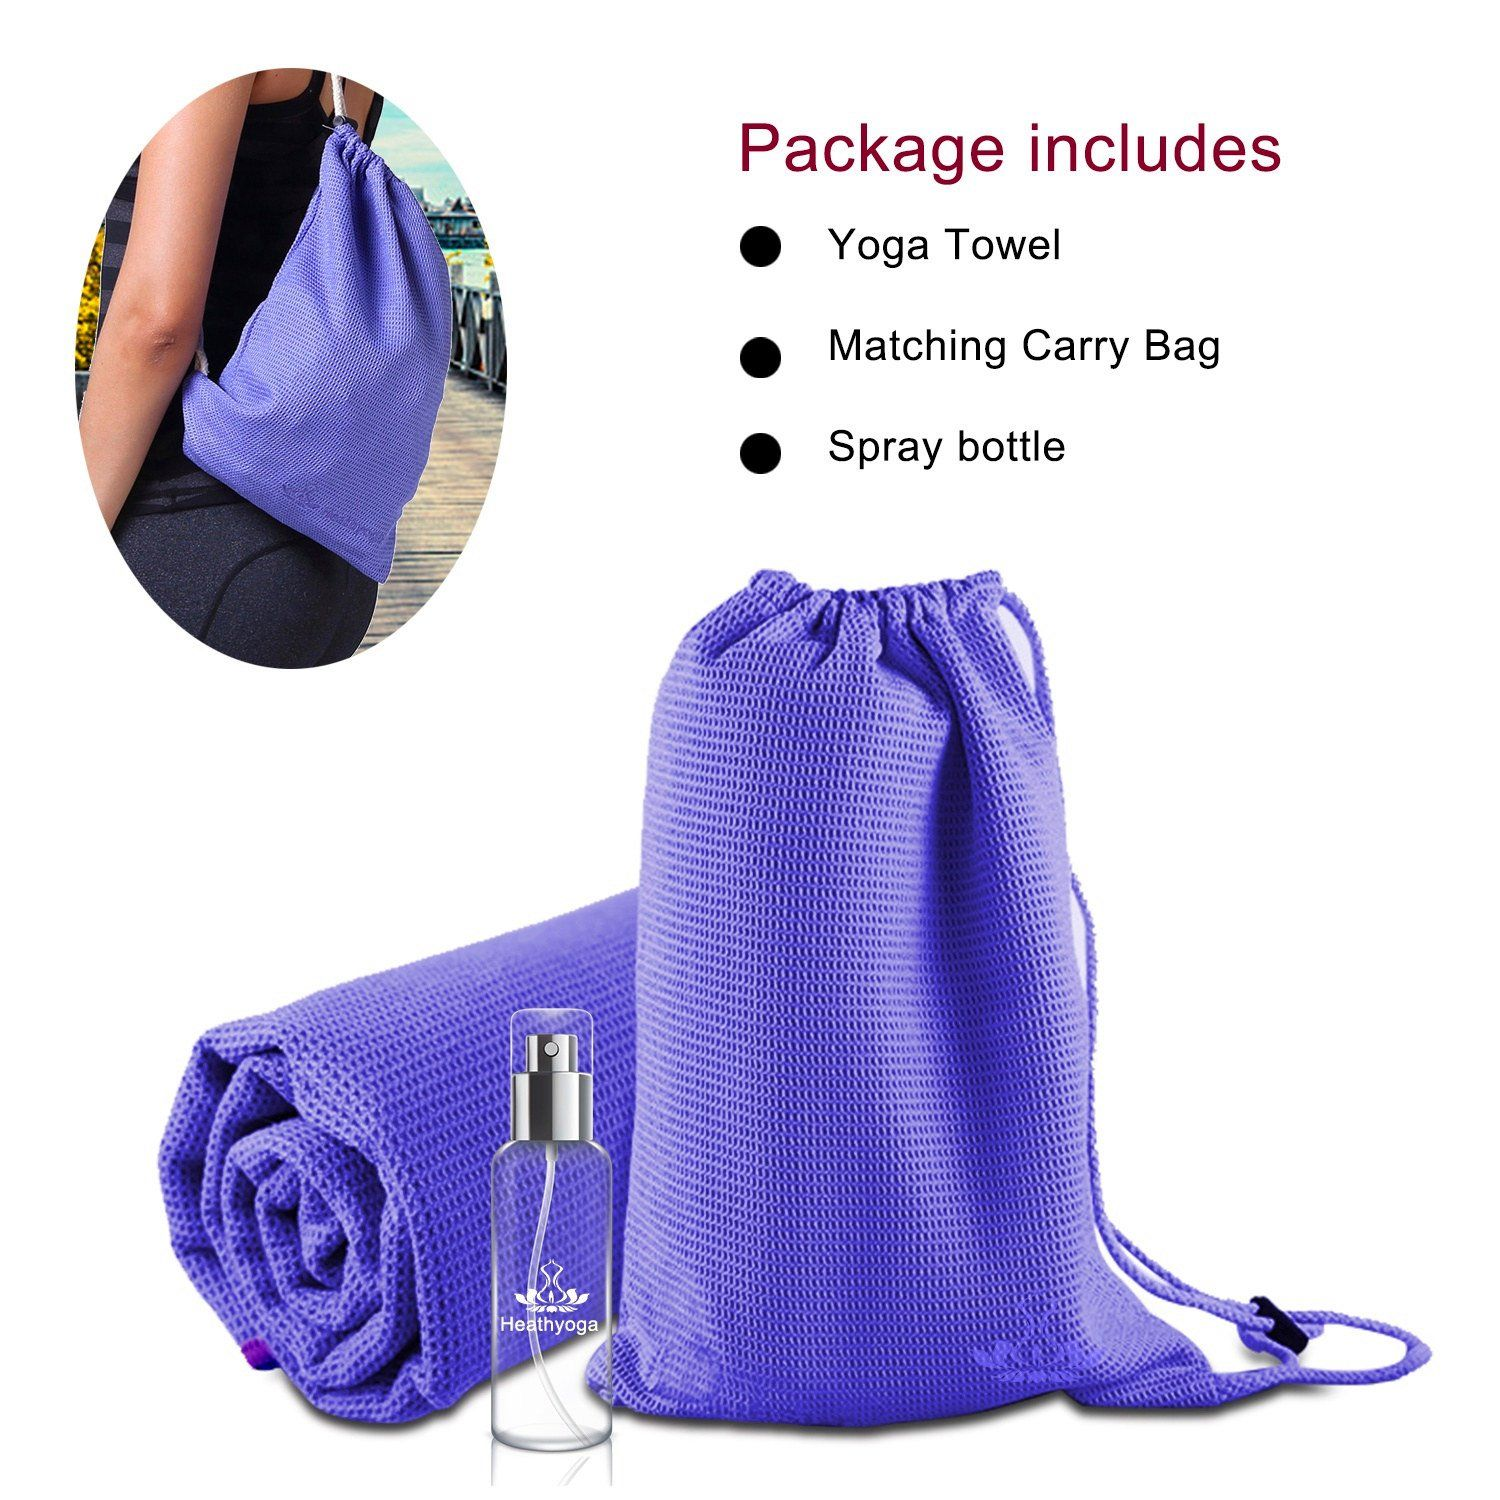 Perfect for Hot Yoga Heathyoga Non Slip Yoga Towel Bikram and Pilates Microfiber and Silicone Coating Layer Free Carry Bag and Spray Bottle Exclusive Corner Pockets Design